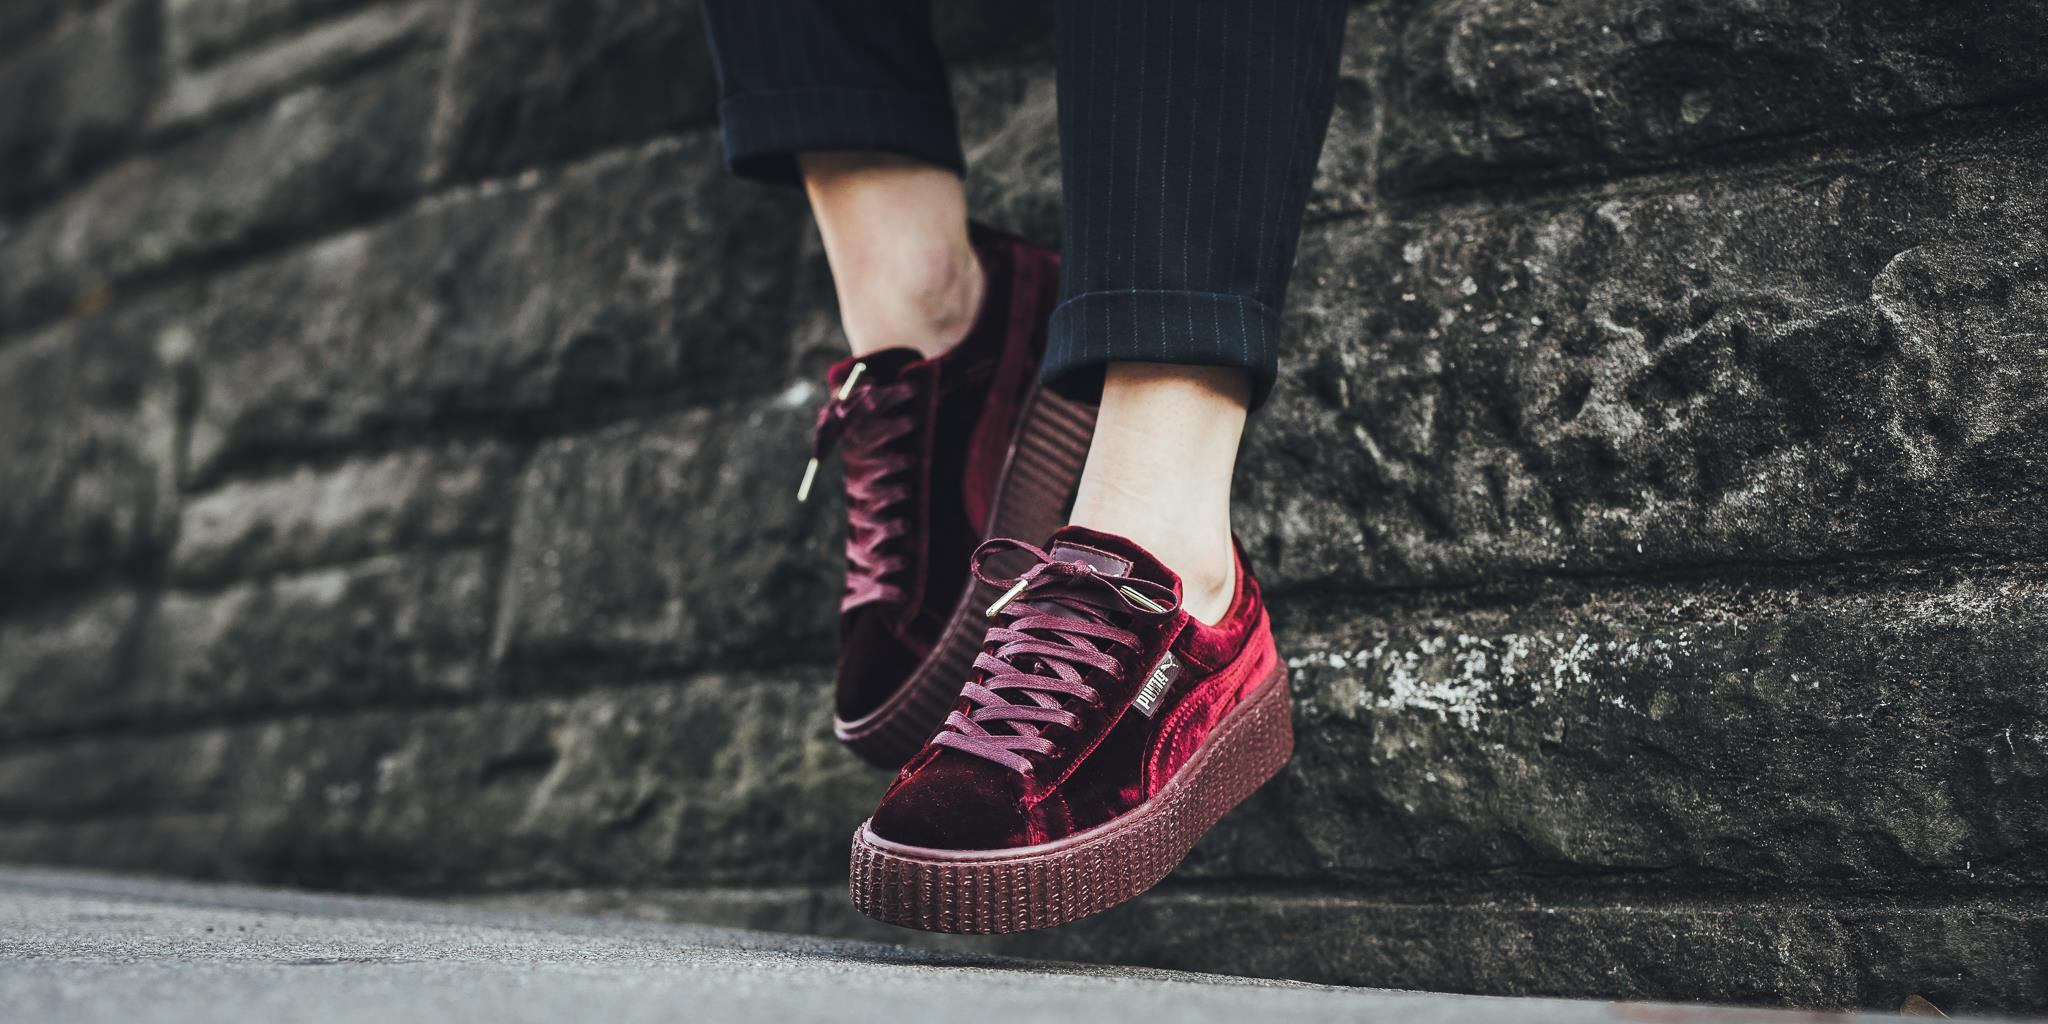 7c803006645 ... Fashion Shoes by Rihanna Women s Velvet Burgundy Creeper Casual sneaker  - Thumbnail 4